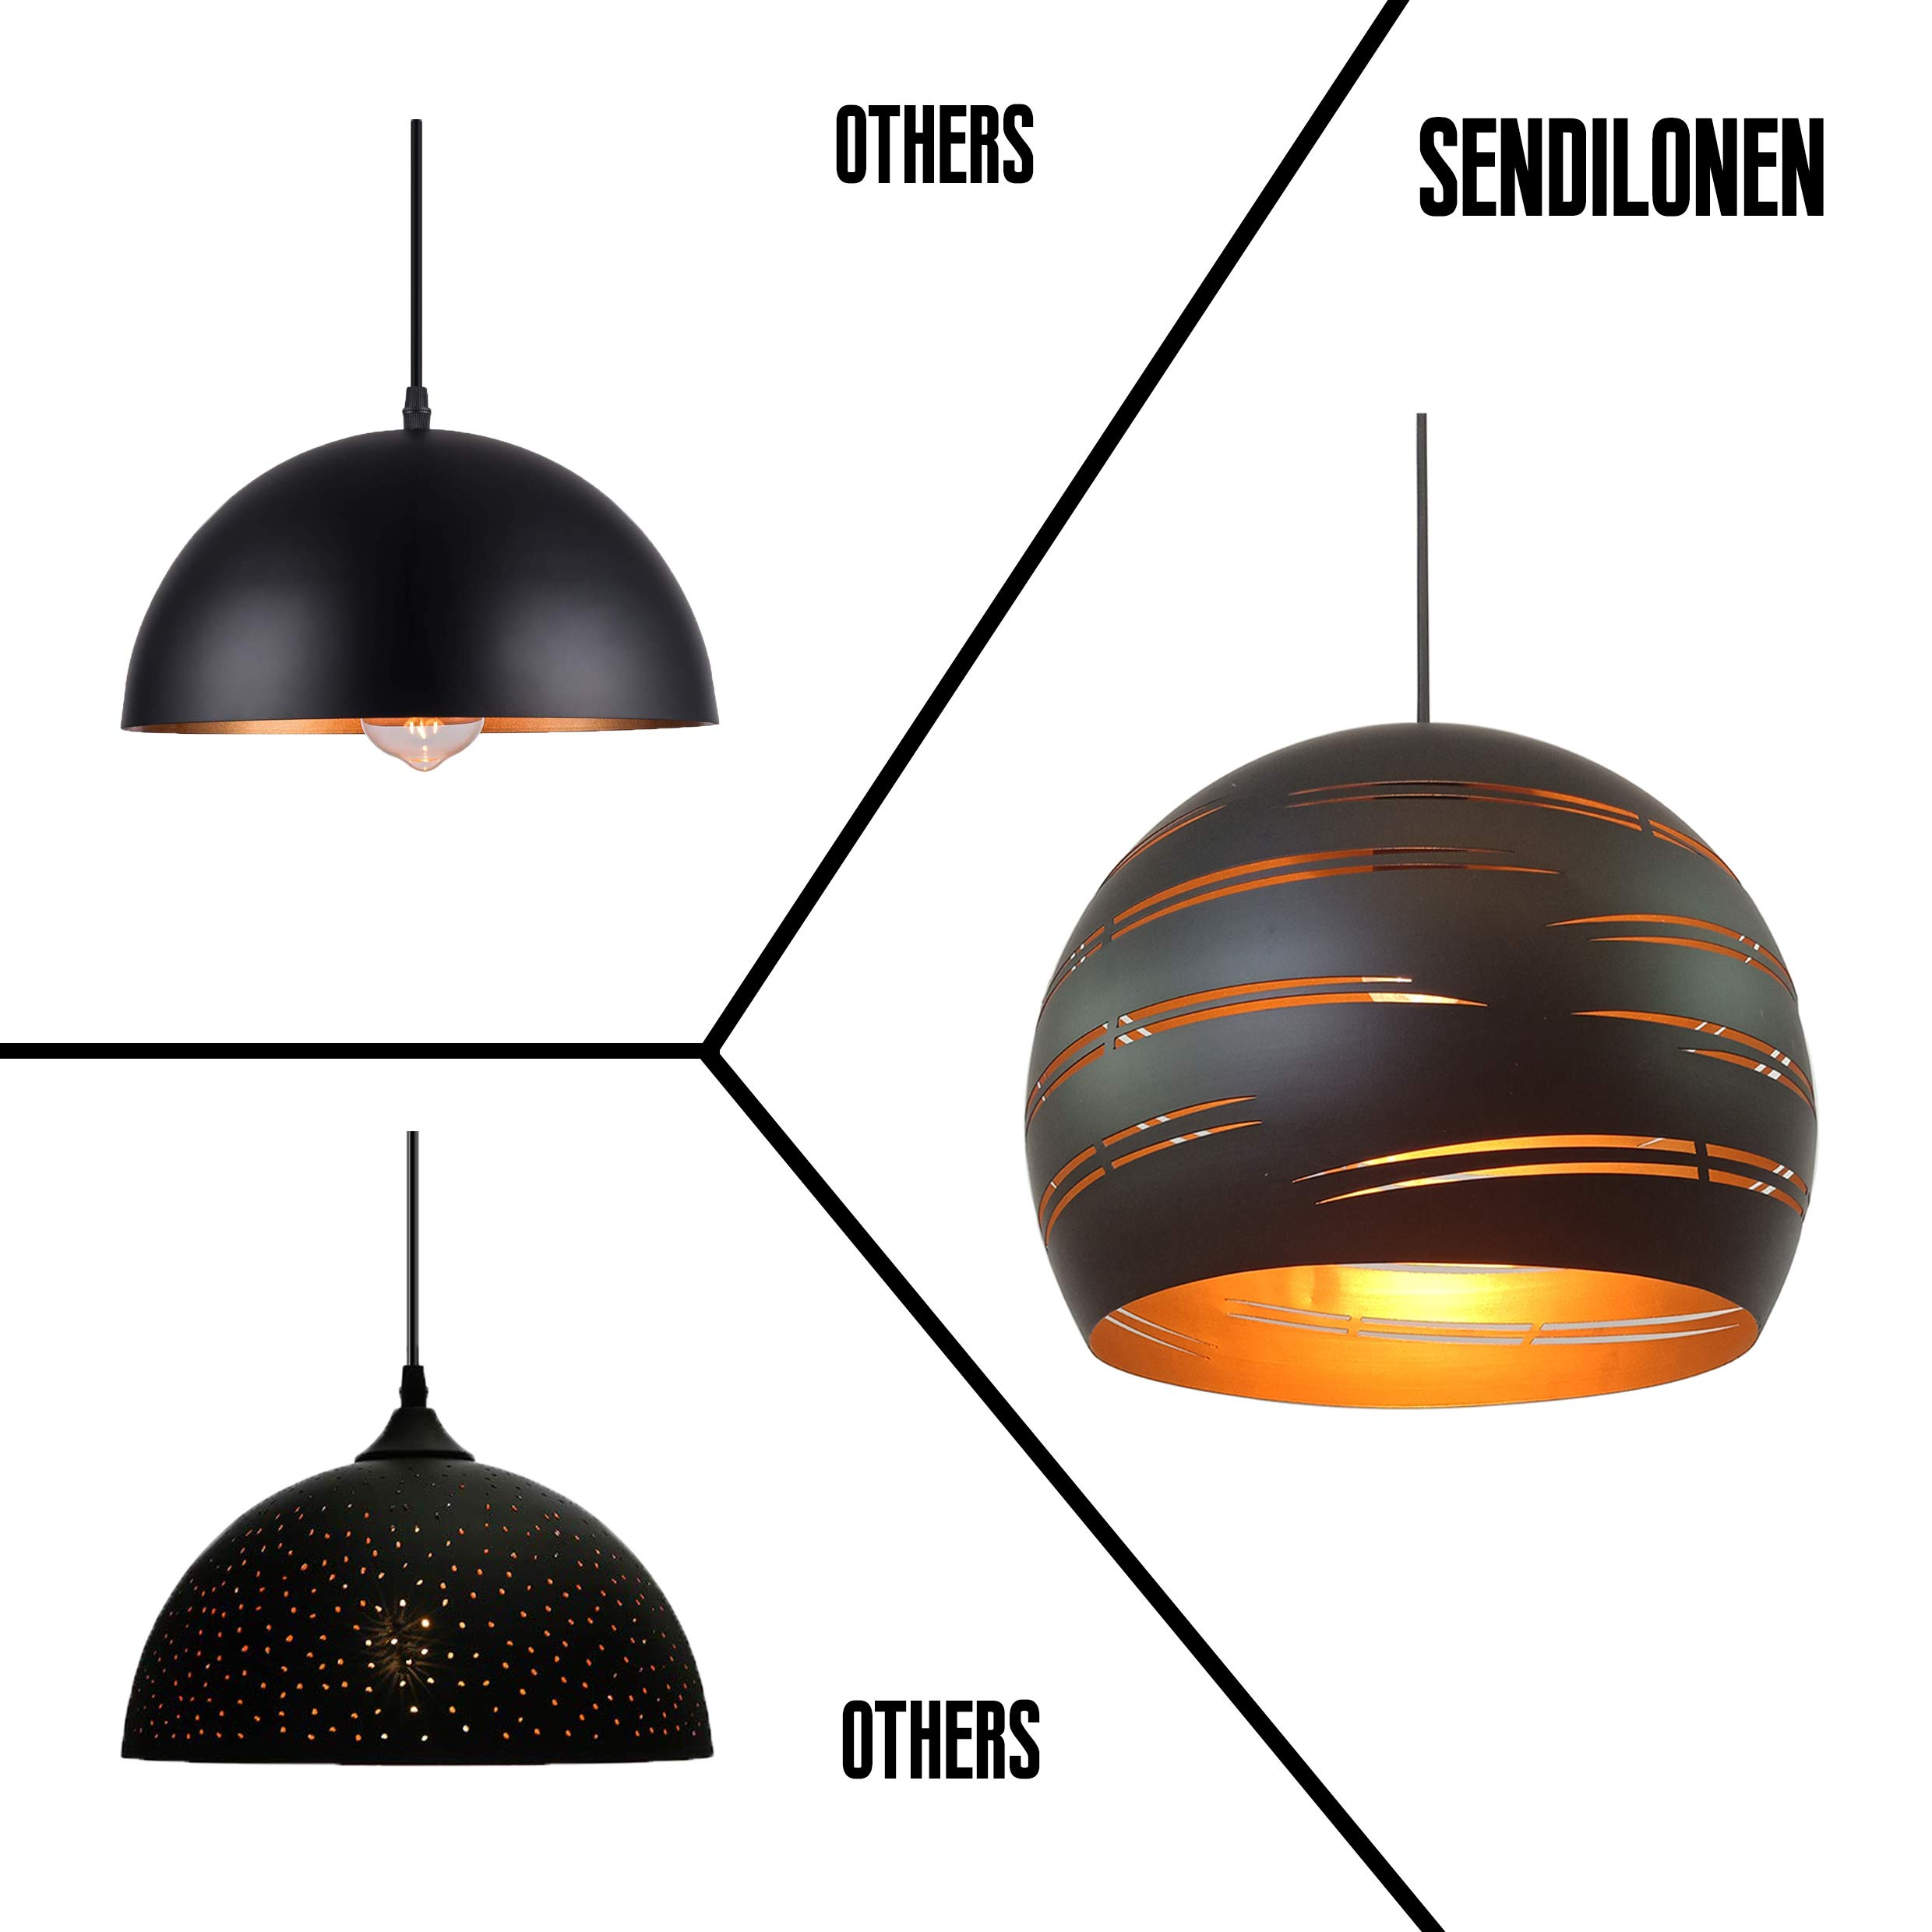 1 Light Pendant Lighting, Adjustable Industrial Metal Pendant Light, Hollow Shade Design, Vintage Hanging Lamp, Matte Black Ceiling Light for Kitchen Island, Included 1 Bulb, SENDILONEN by SENDILONEN (Image #4)